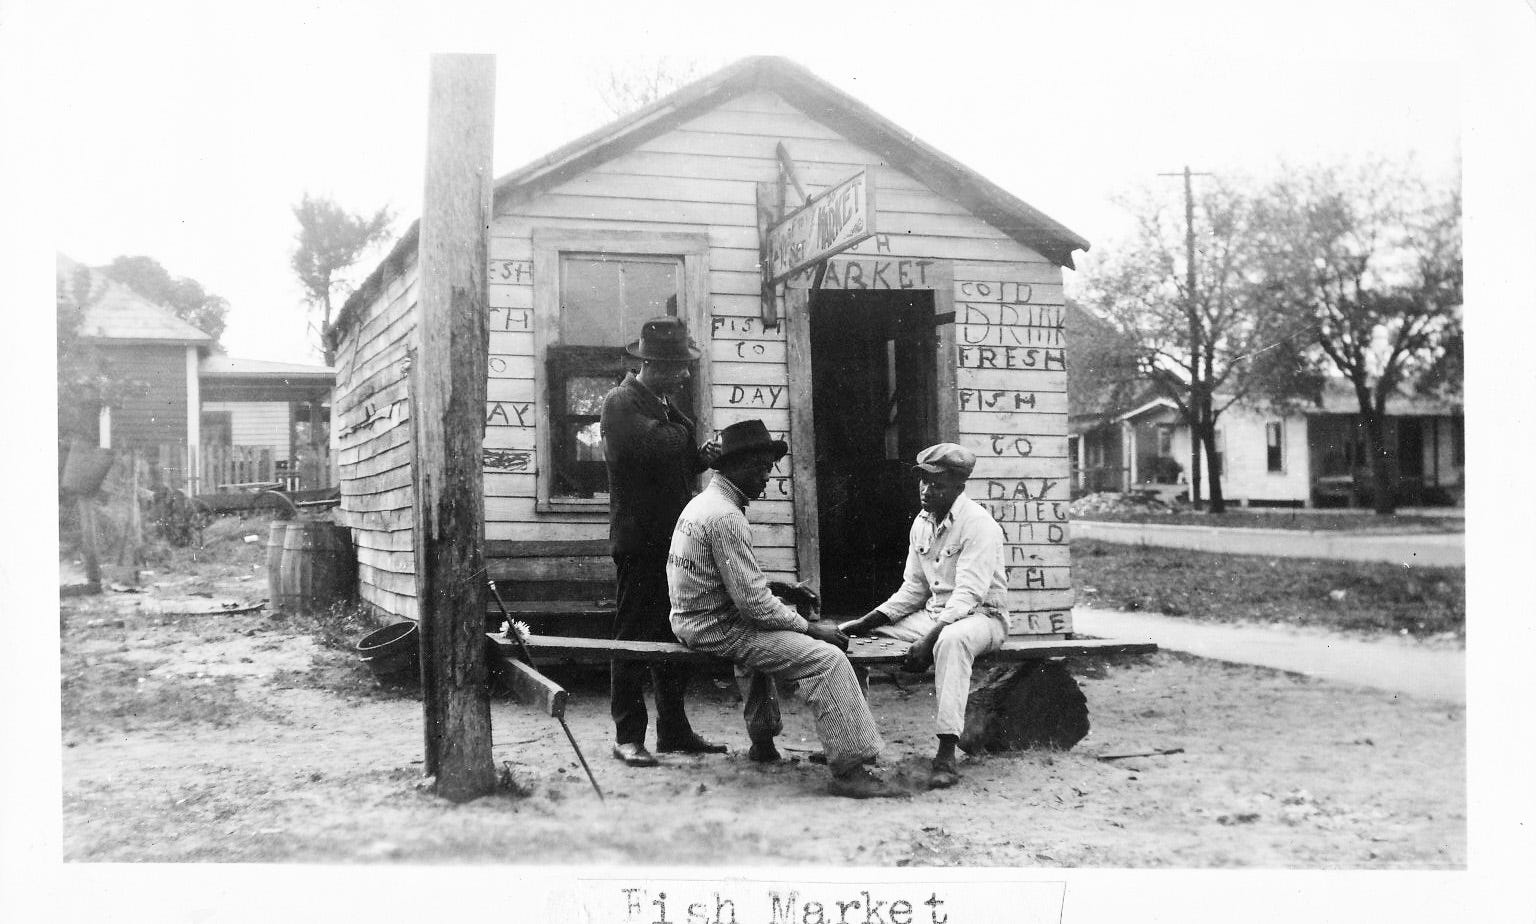 Poverty has always been a part of Daytona Beach's Midtown neighborhood, but residents in the early 1900s made the best of their fate and created a community where people helped one another survive. This scene of two men playing checkers in front of a ramshackle fish market building was shot in 1943.